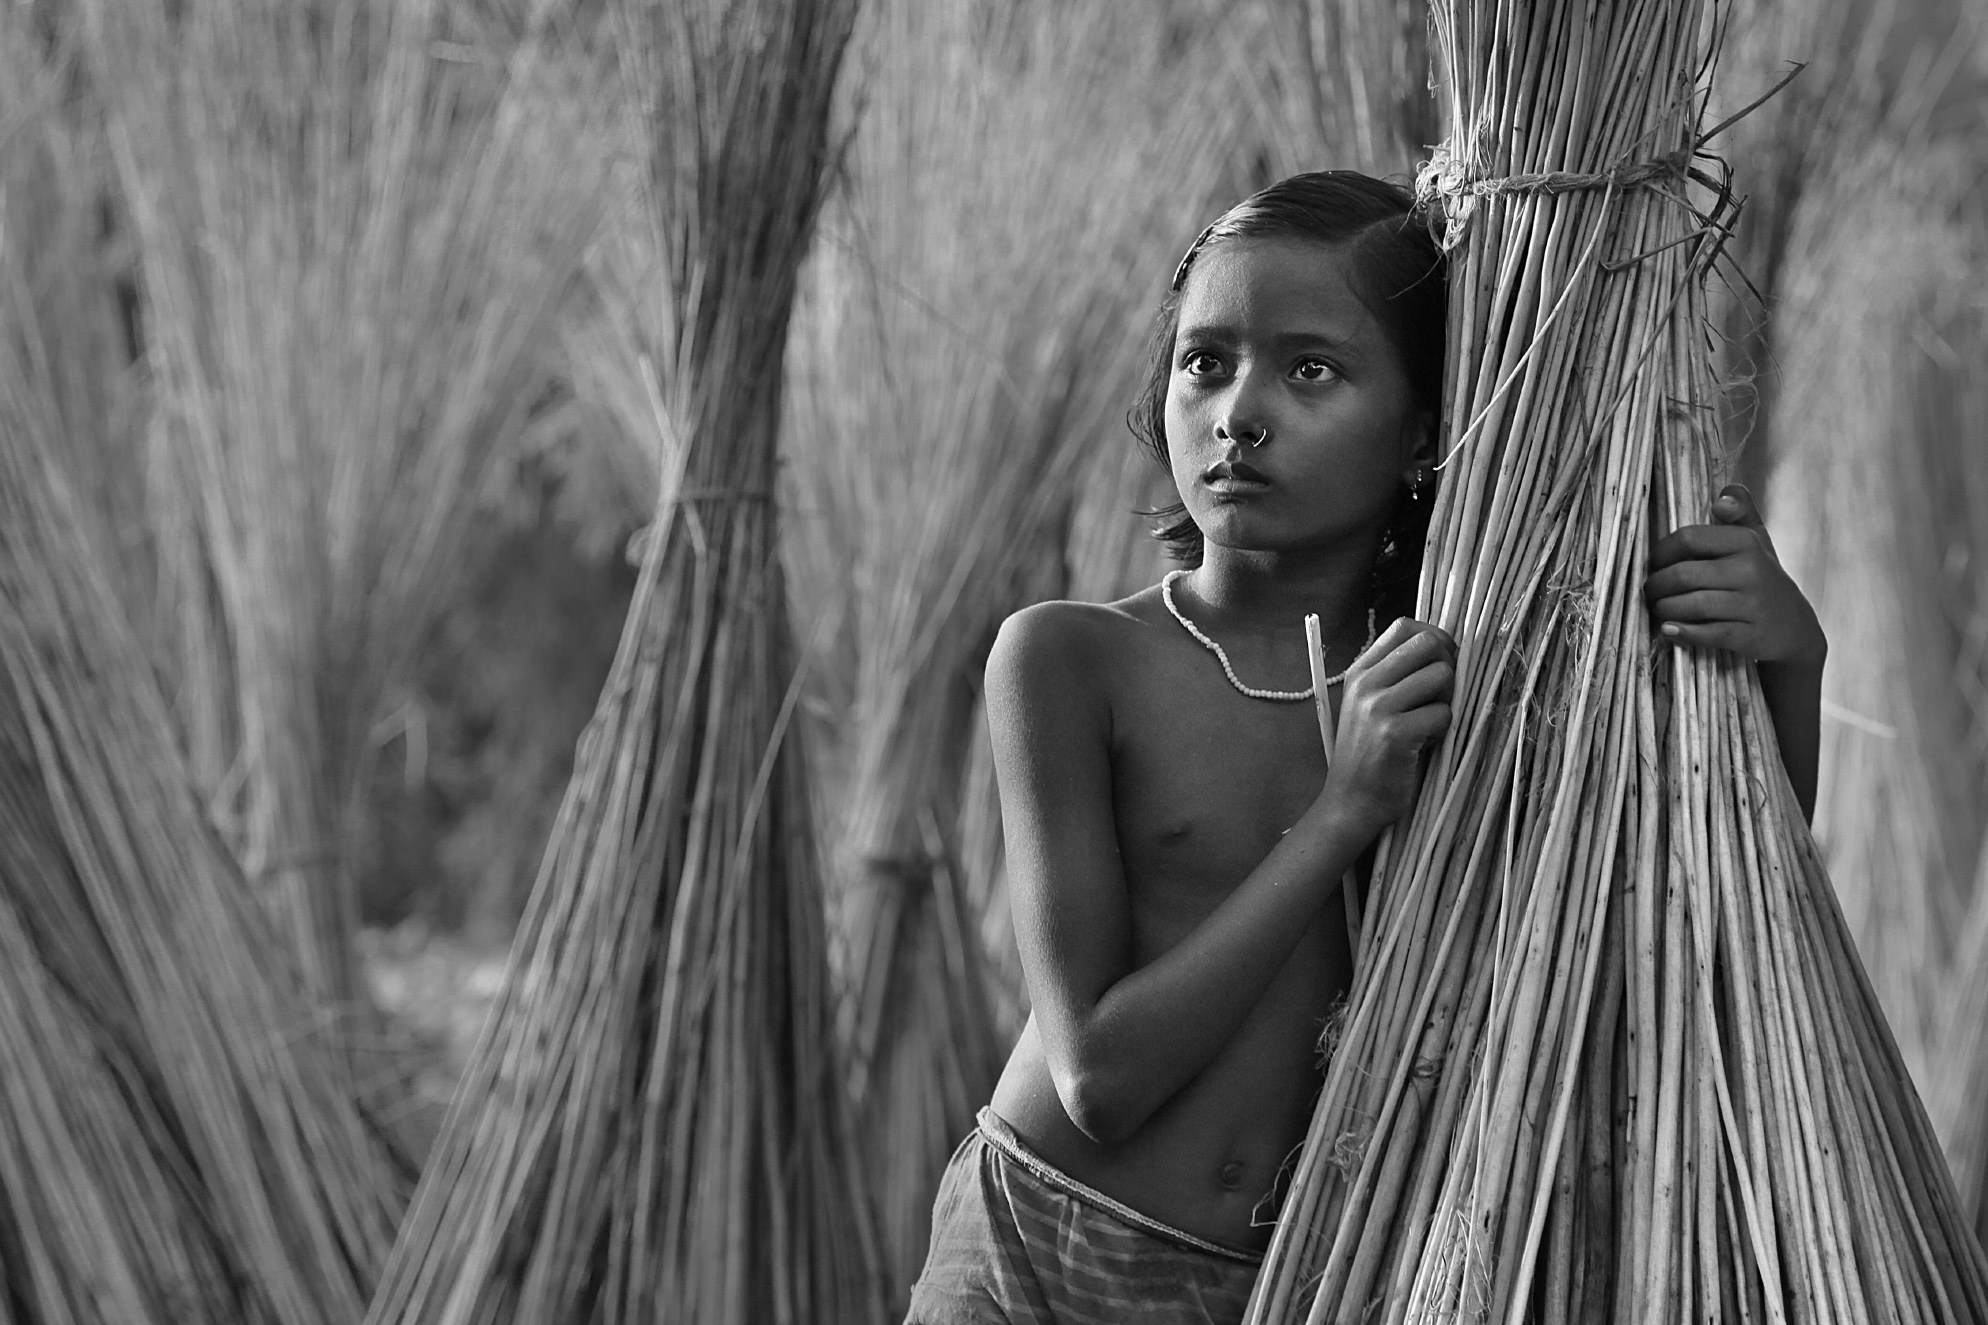 I took this image of a village girl at Cooch Behar,West Bengal,India.This image portrays the actual rural flavour of India.